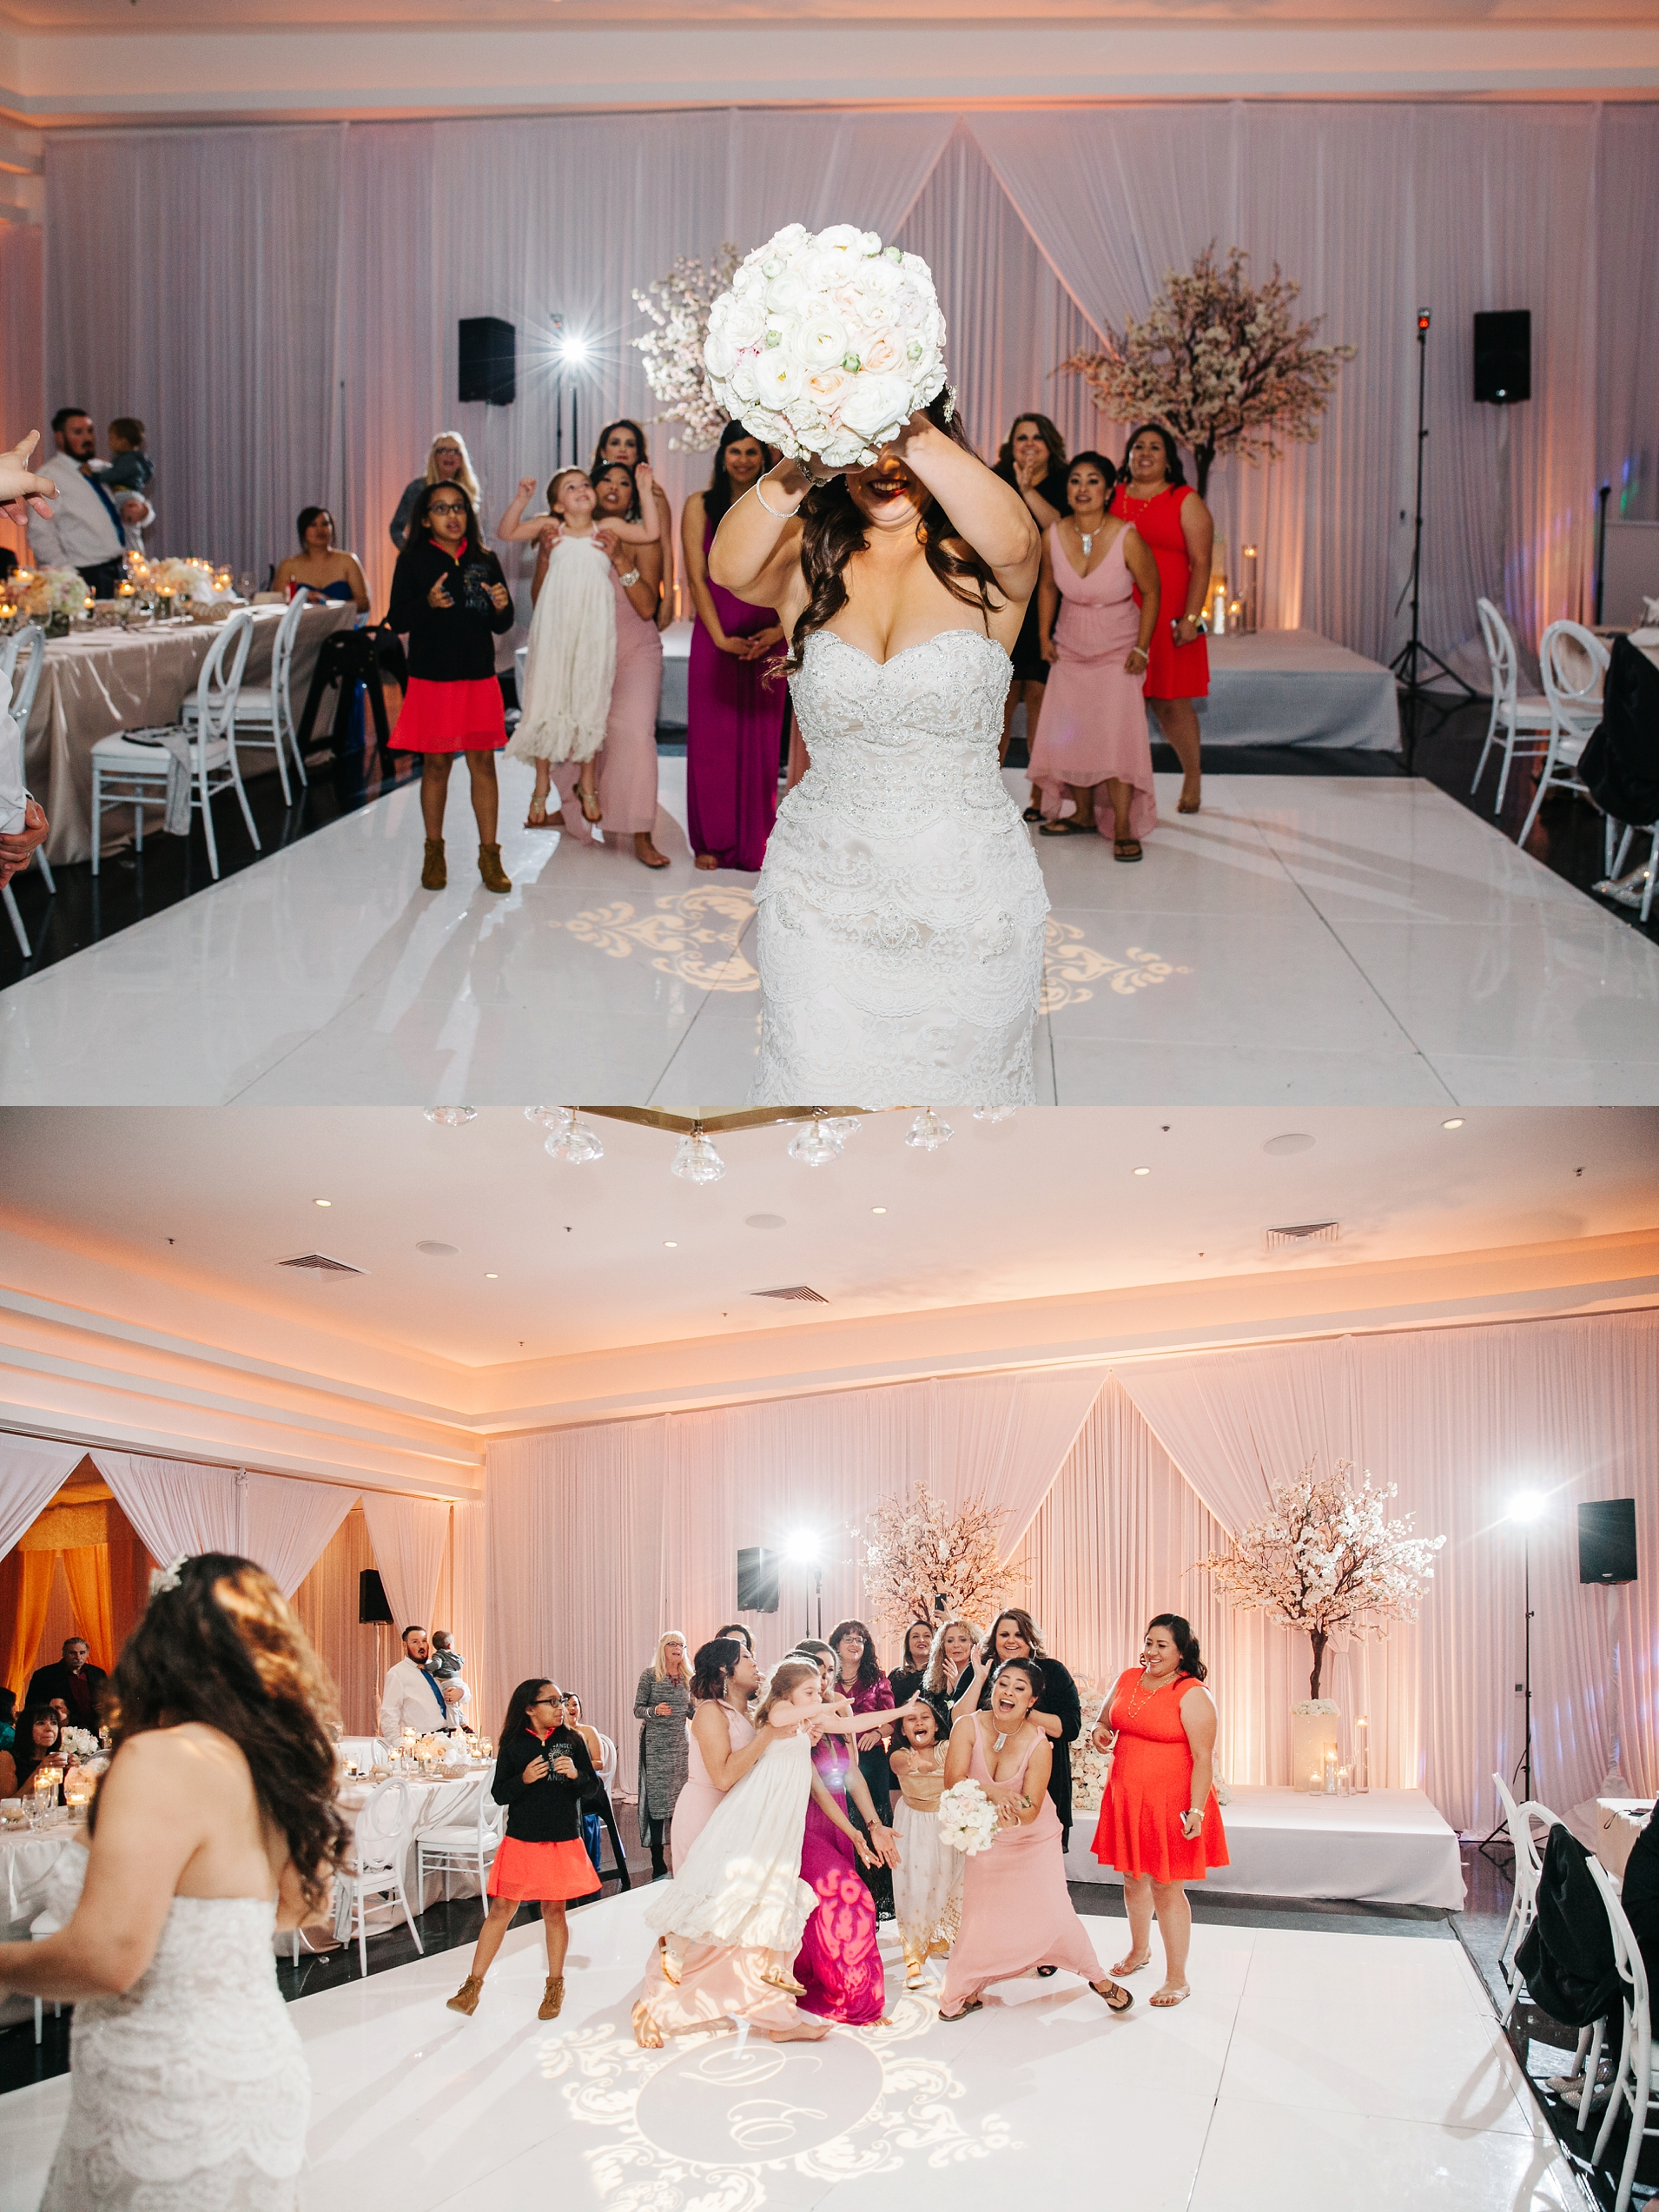 Bouquet Toss-Wedding Reception by Brittney Hannon Photography at Venue by Three Petals Wedding in Huntington Beach, CA